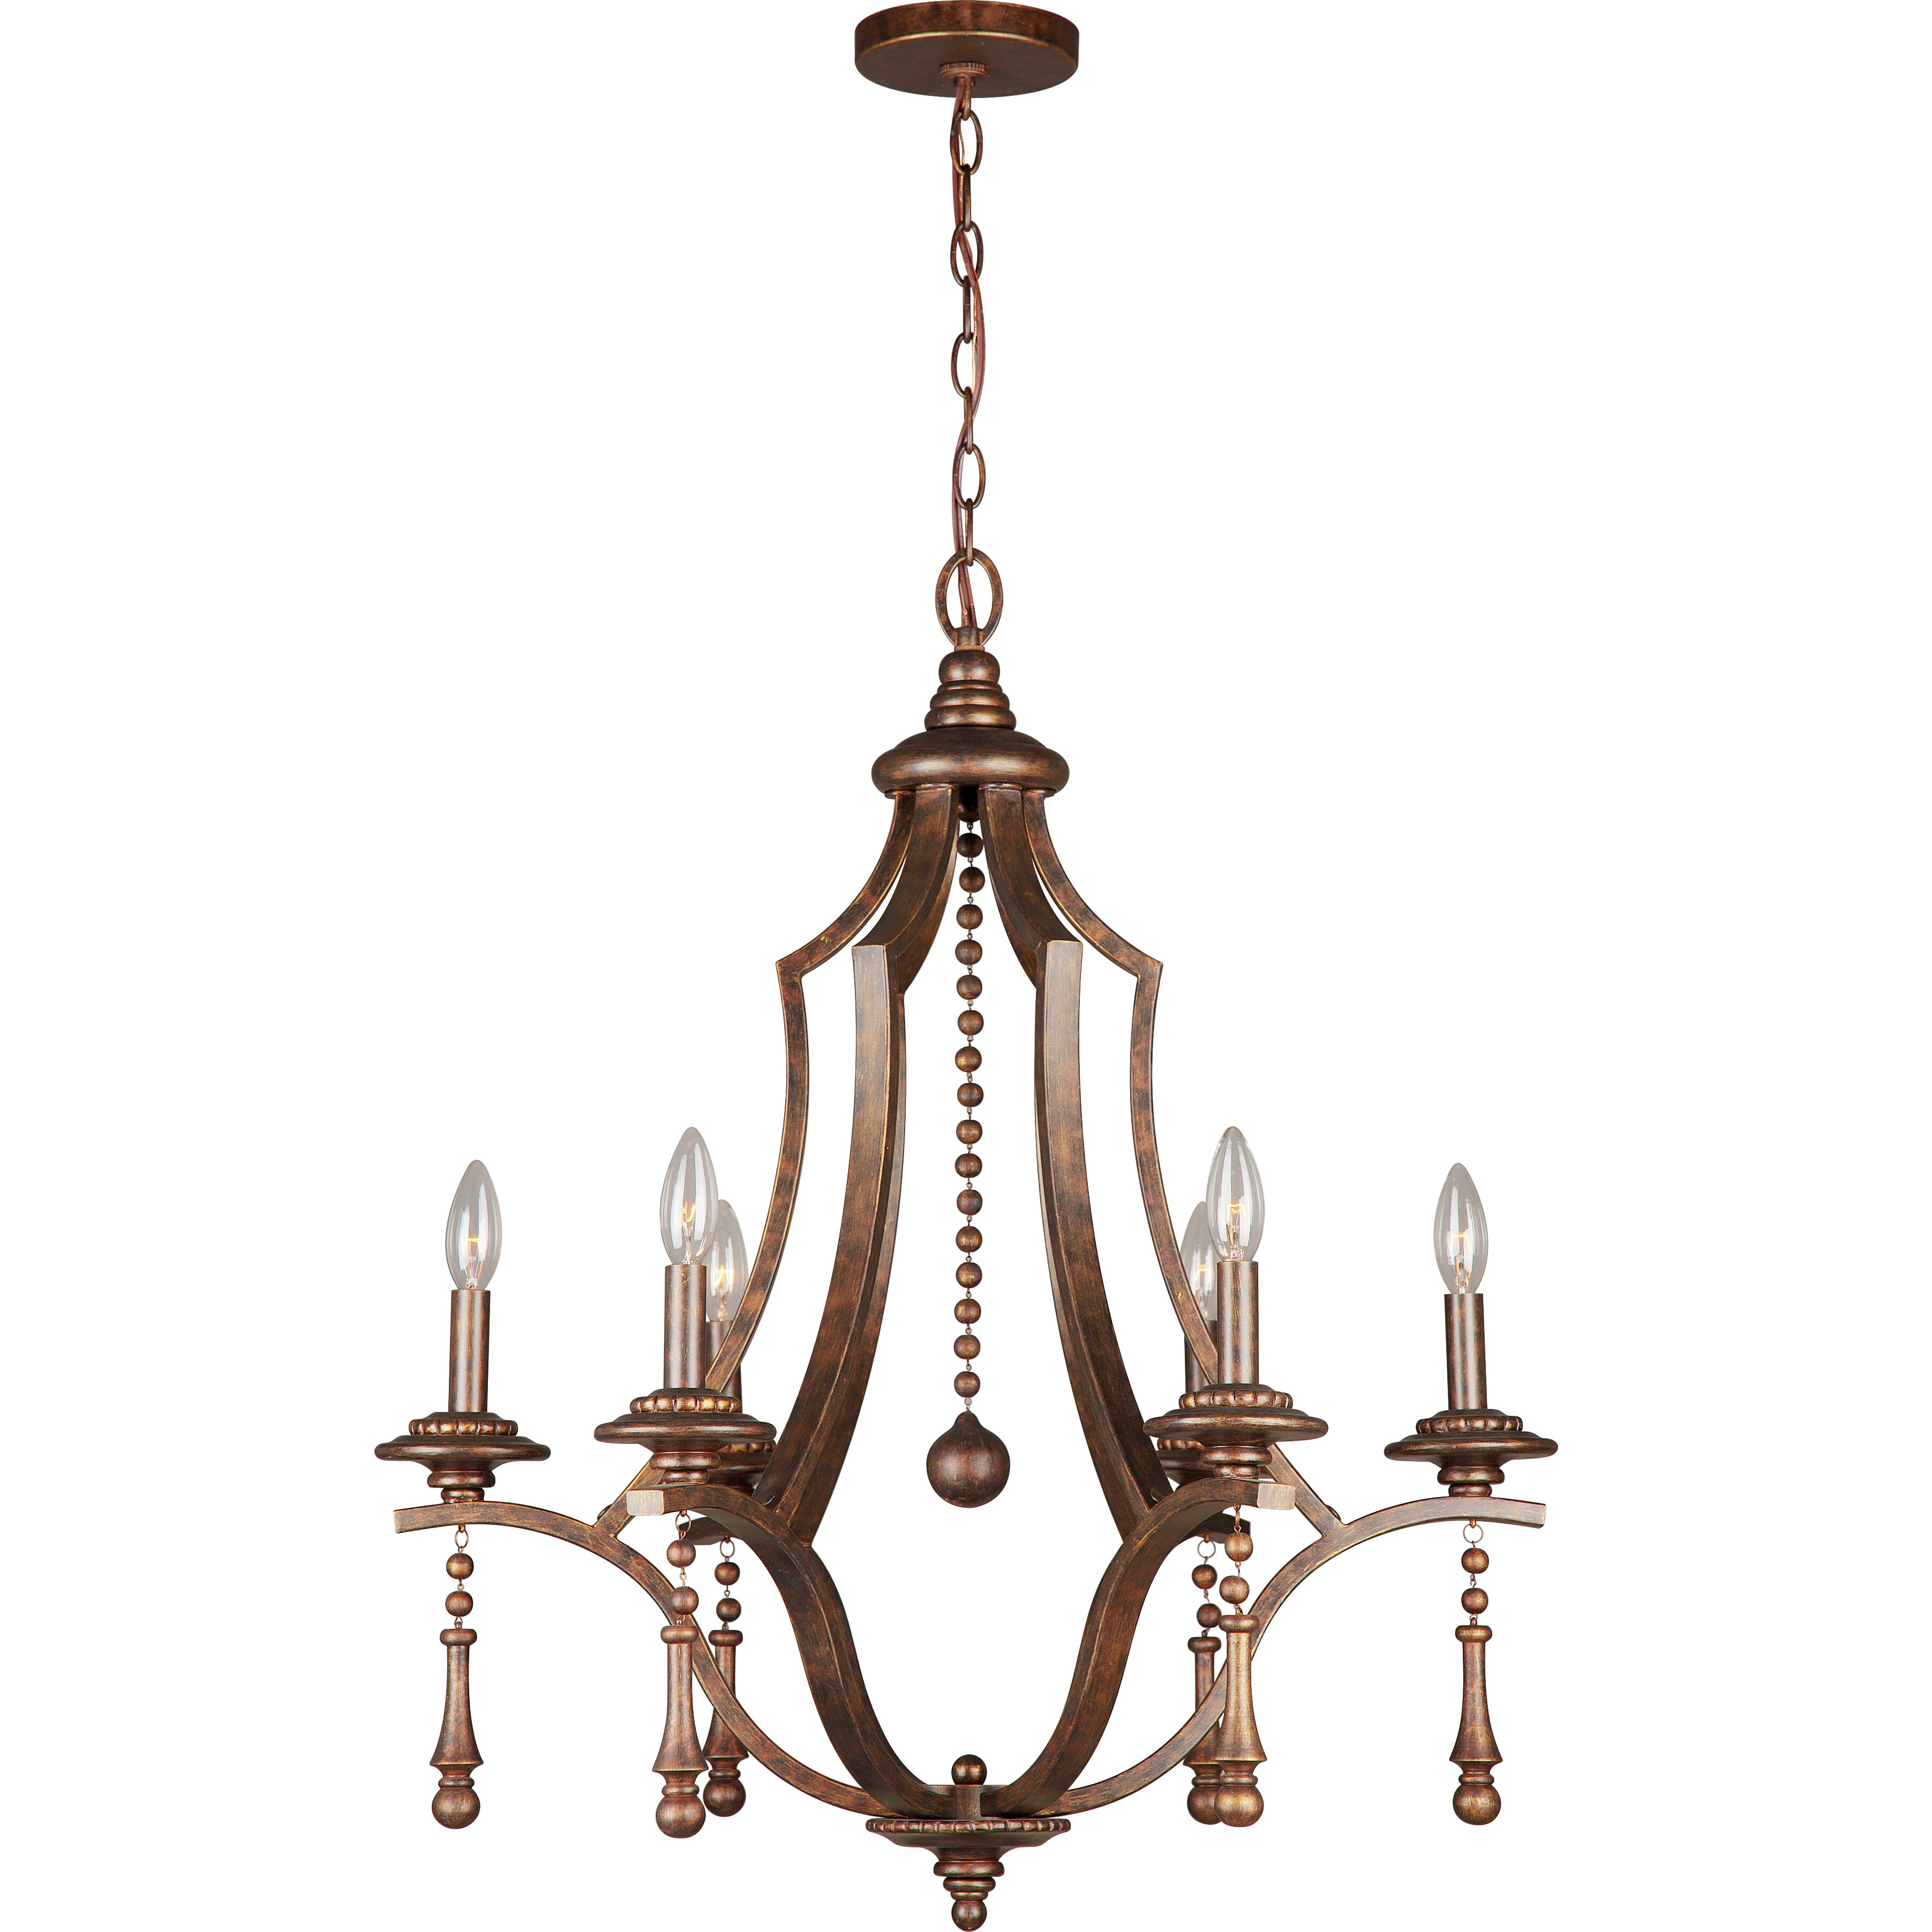 Crystorama Parson 6 Light Candle Chandelier & Reviews